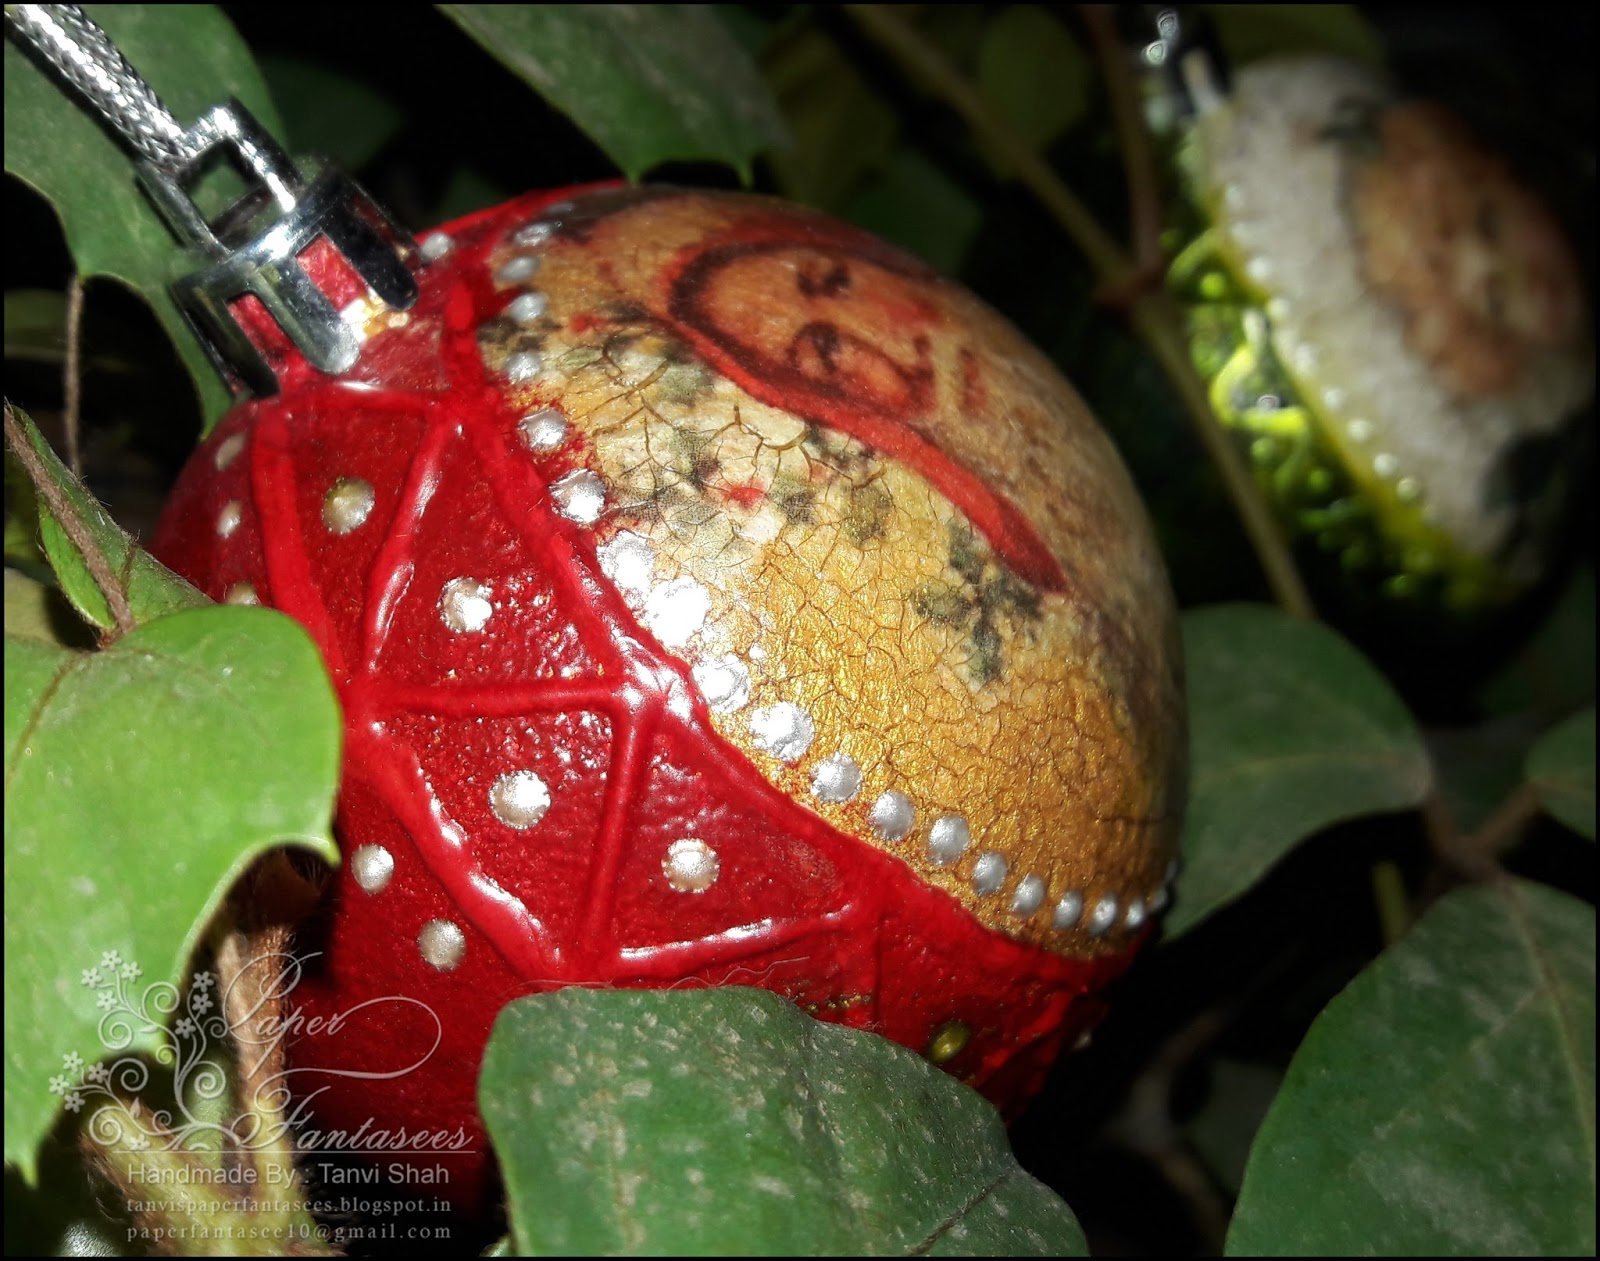 Paper fantasees the craft christmas ornaments decoupage